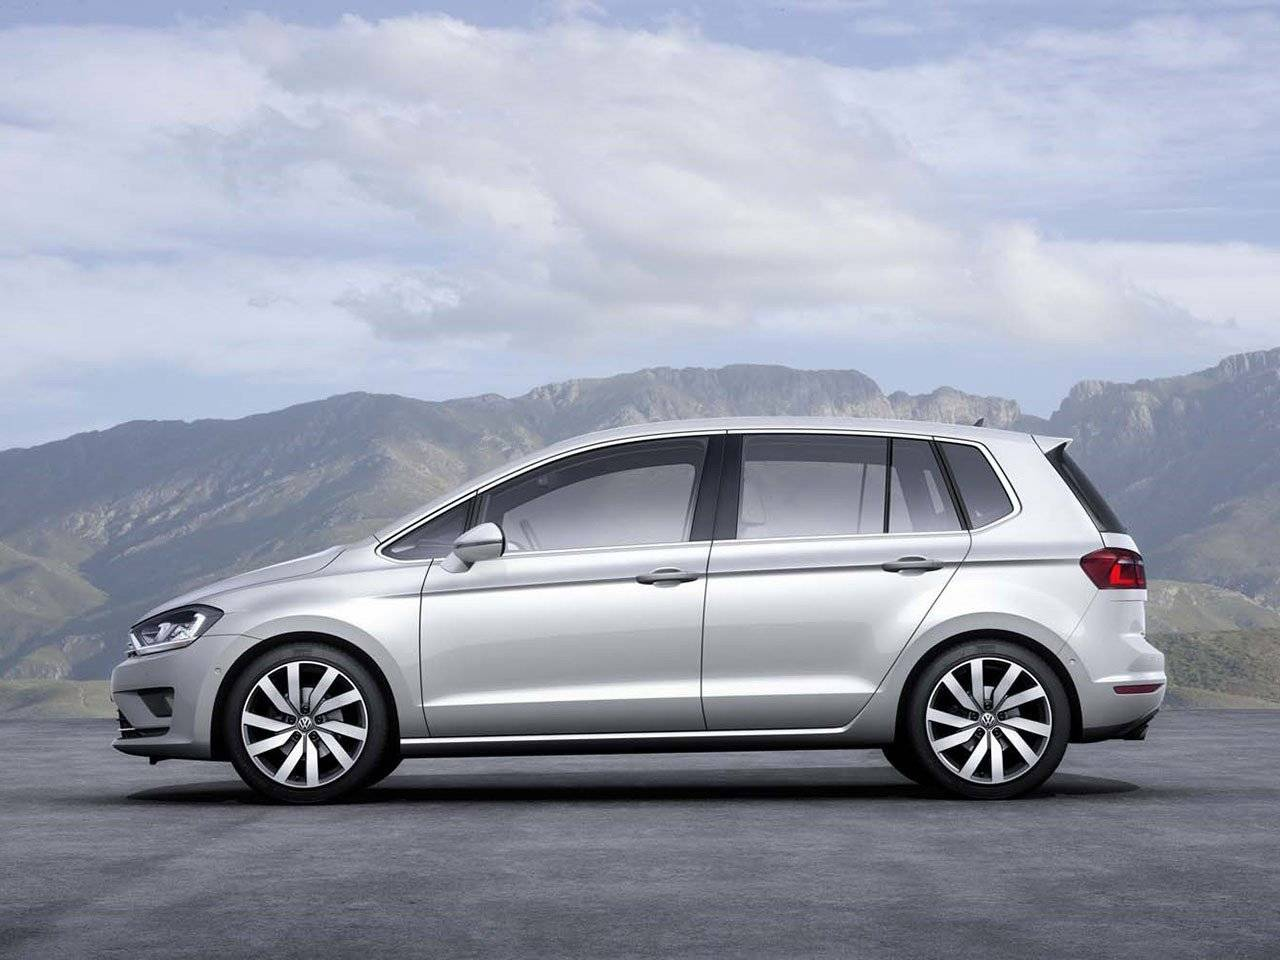 volkswagen golf plus heet voortaan sportsvan autonieuws. Black Bedroom Furniture Sets. Home Design Ideas